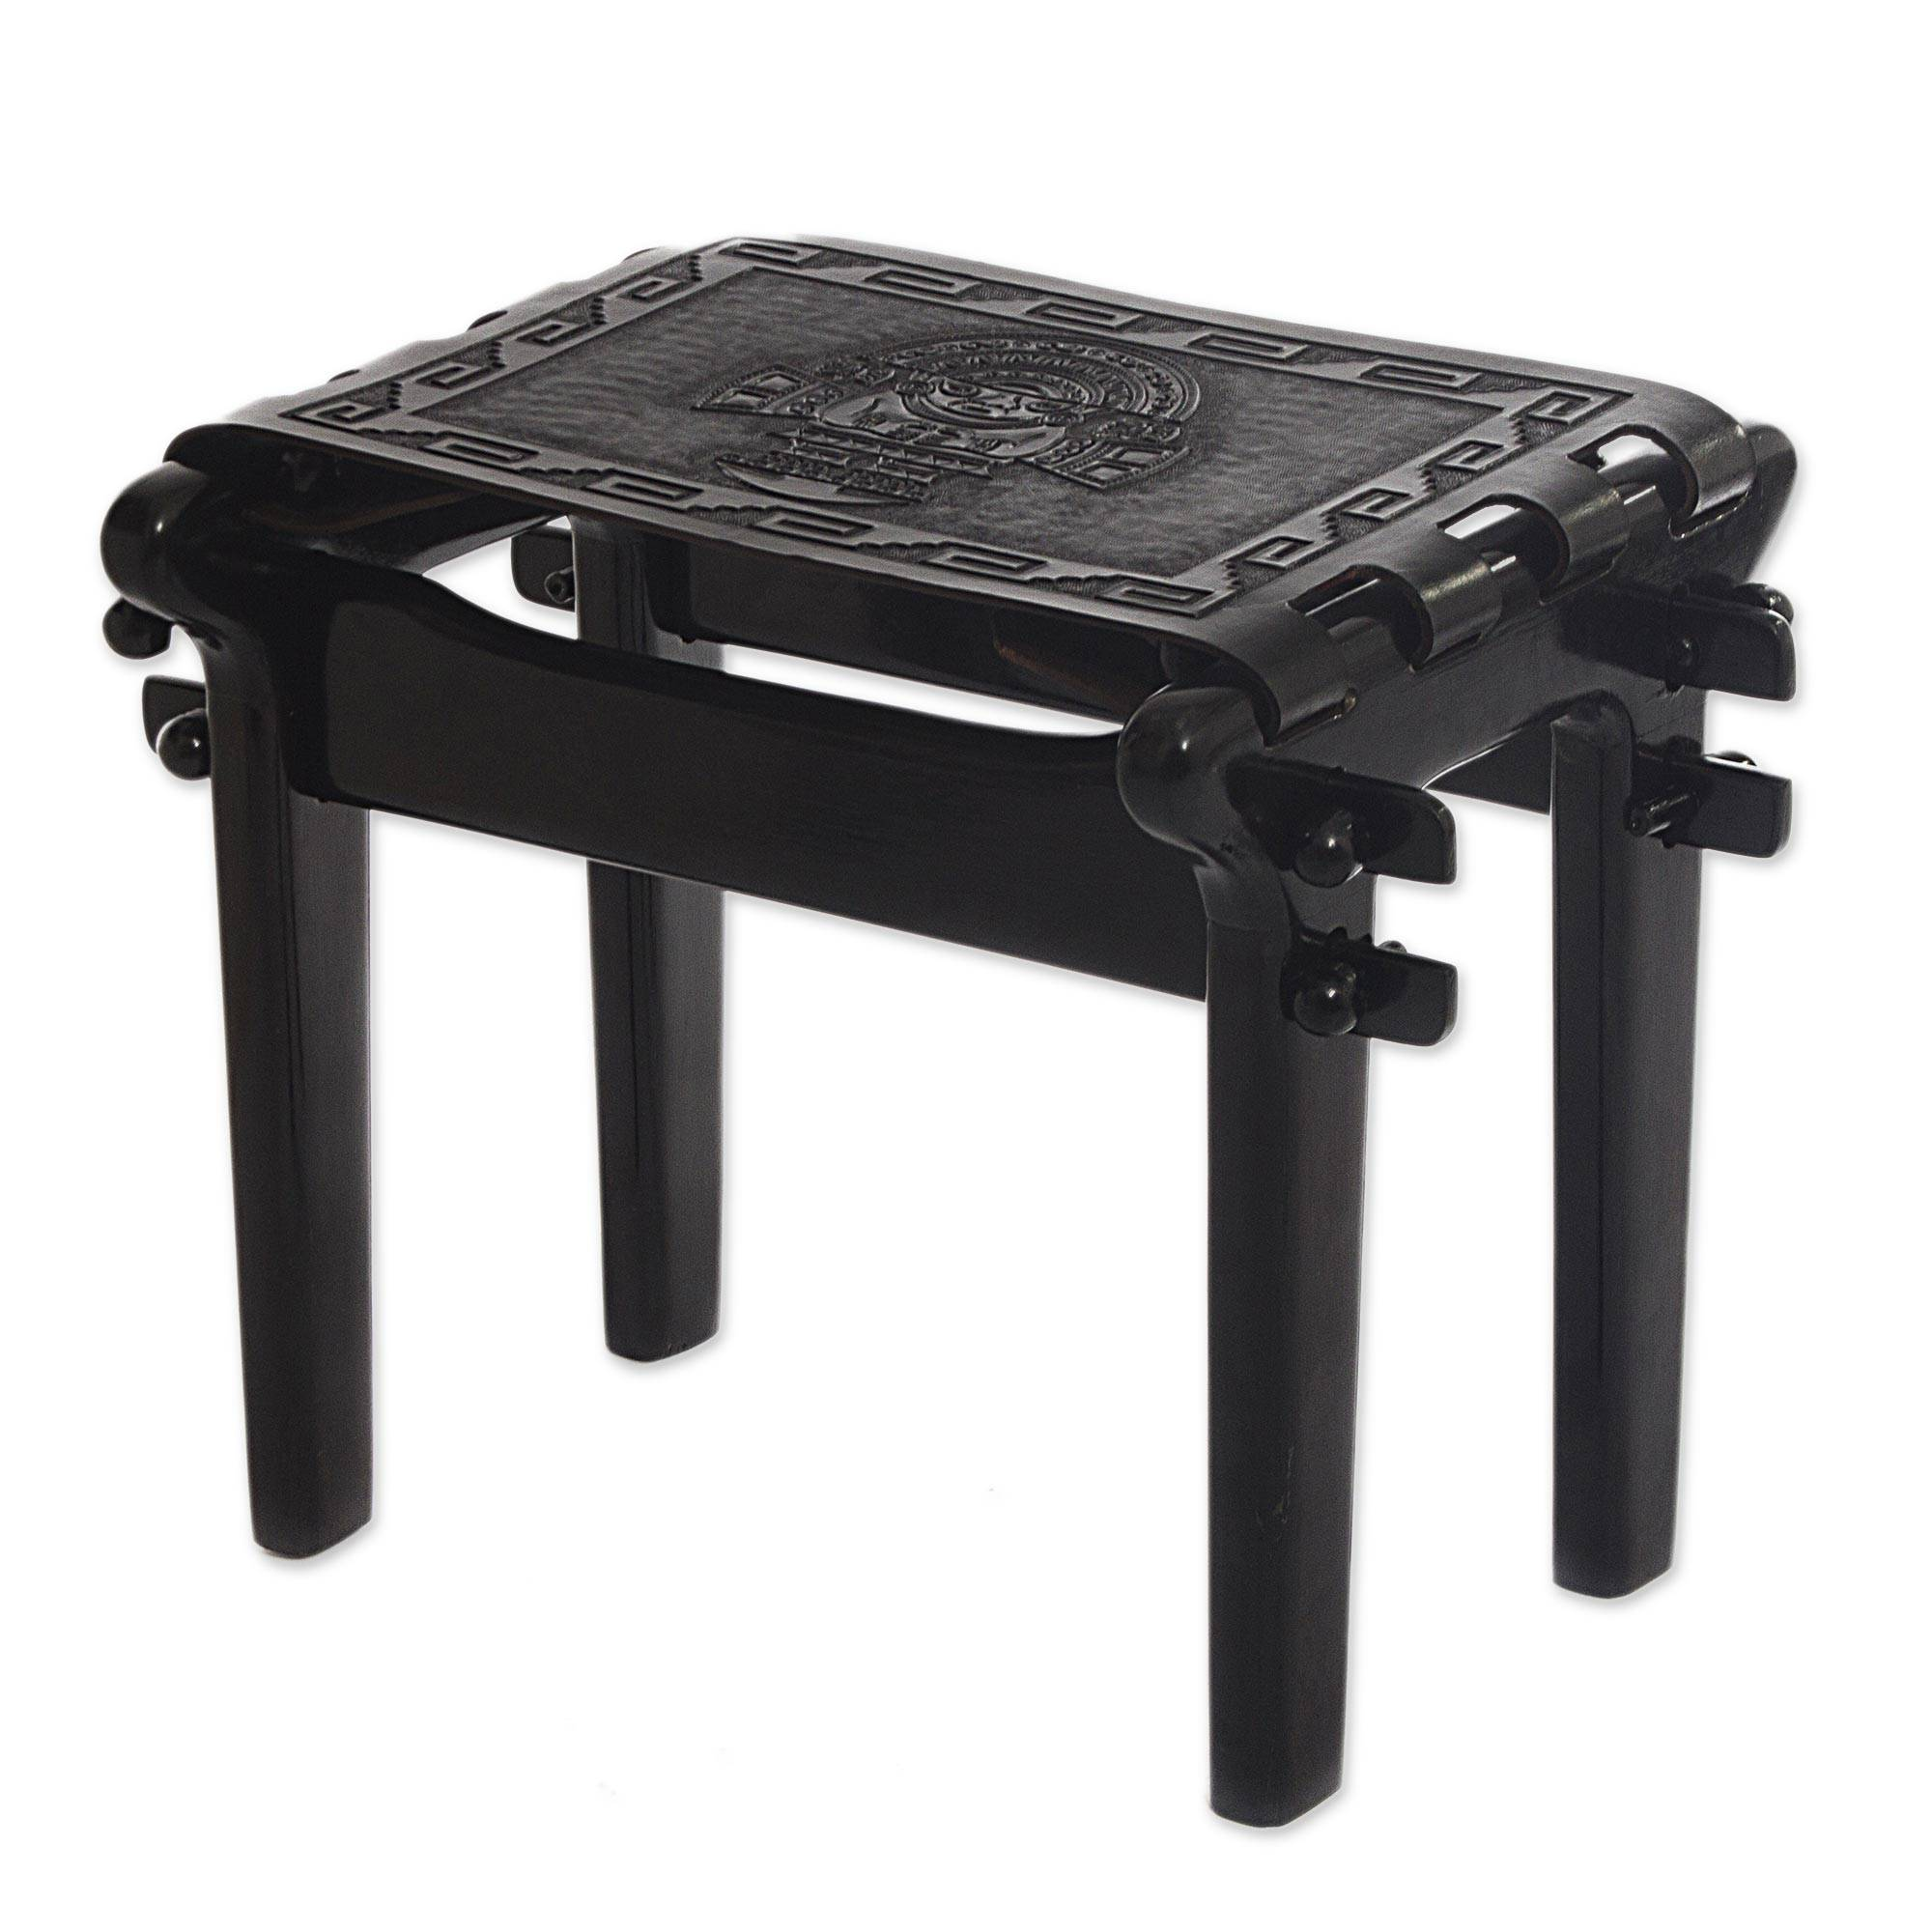 Handcrafted Black Tooled Leather Wood Stool from Peru - Nobility | NOVICA  sc 1 st  Novica & Handcrafted Black Tooled Leather Wood Stool from Peru - Nobility ... islam-shia.org